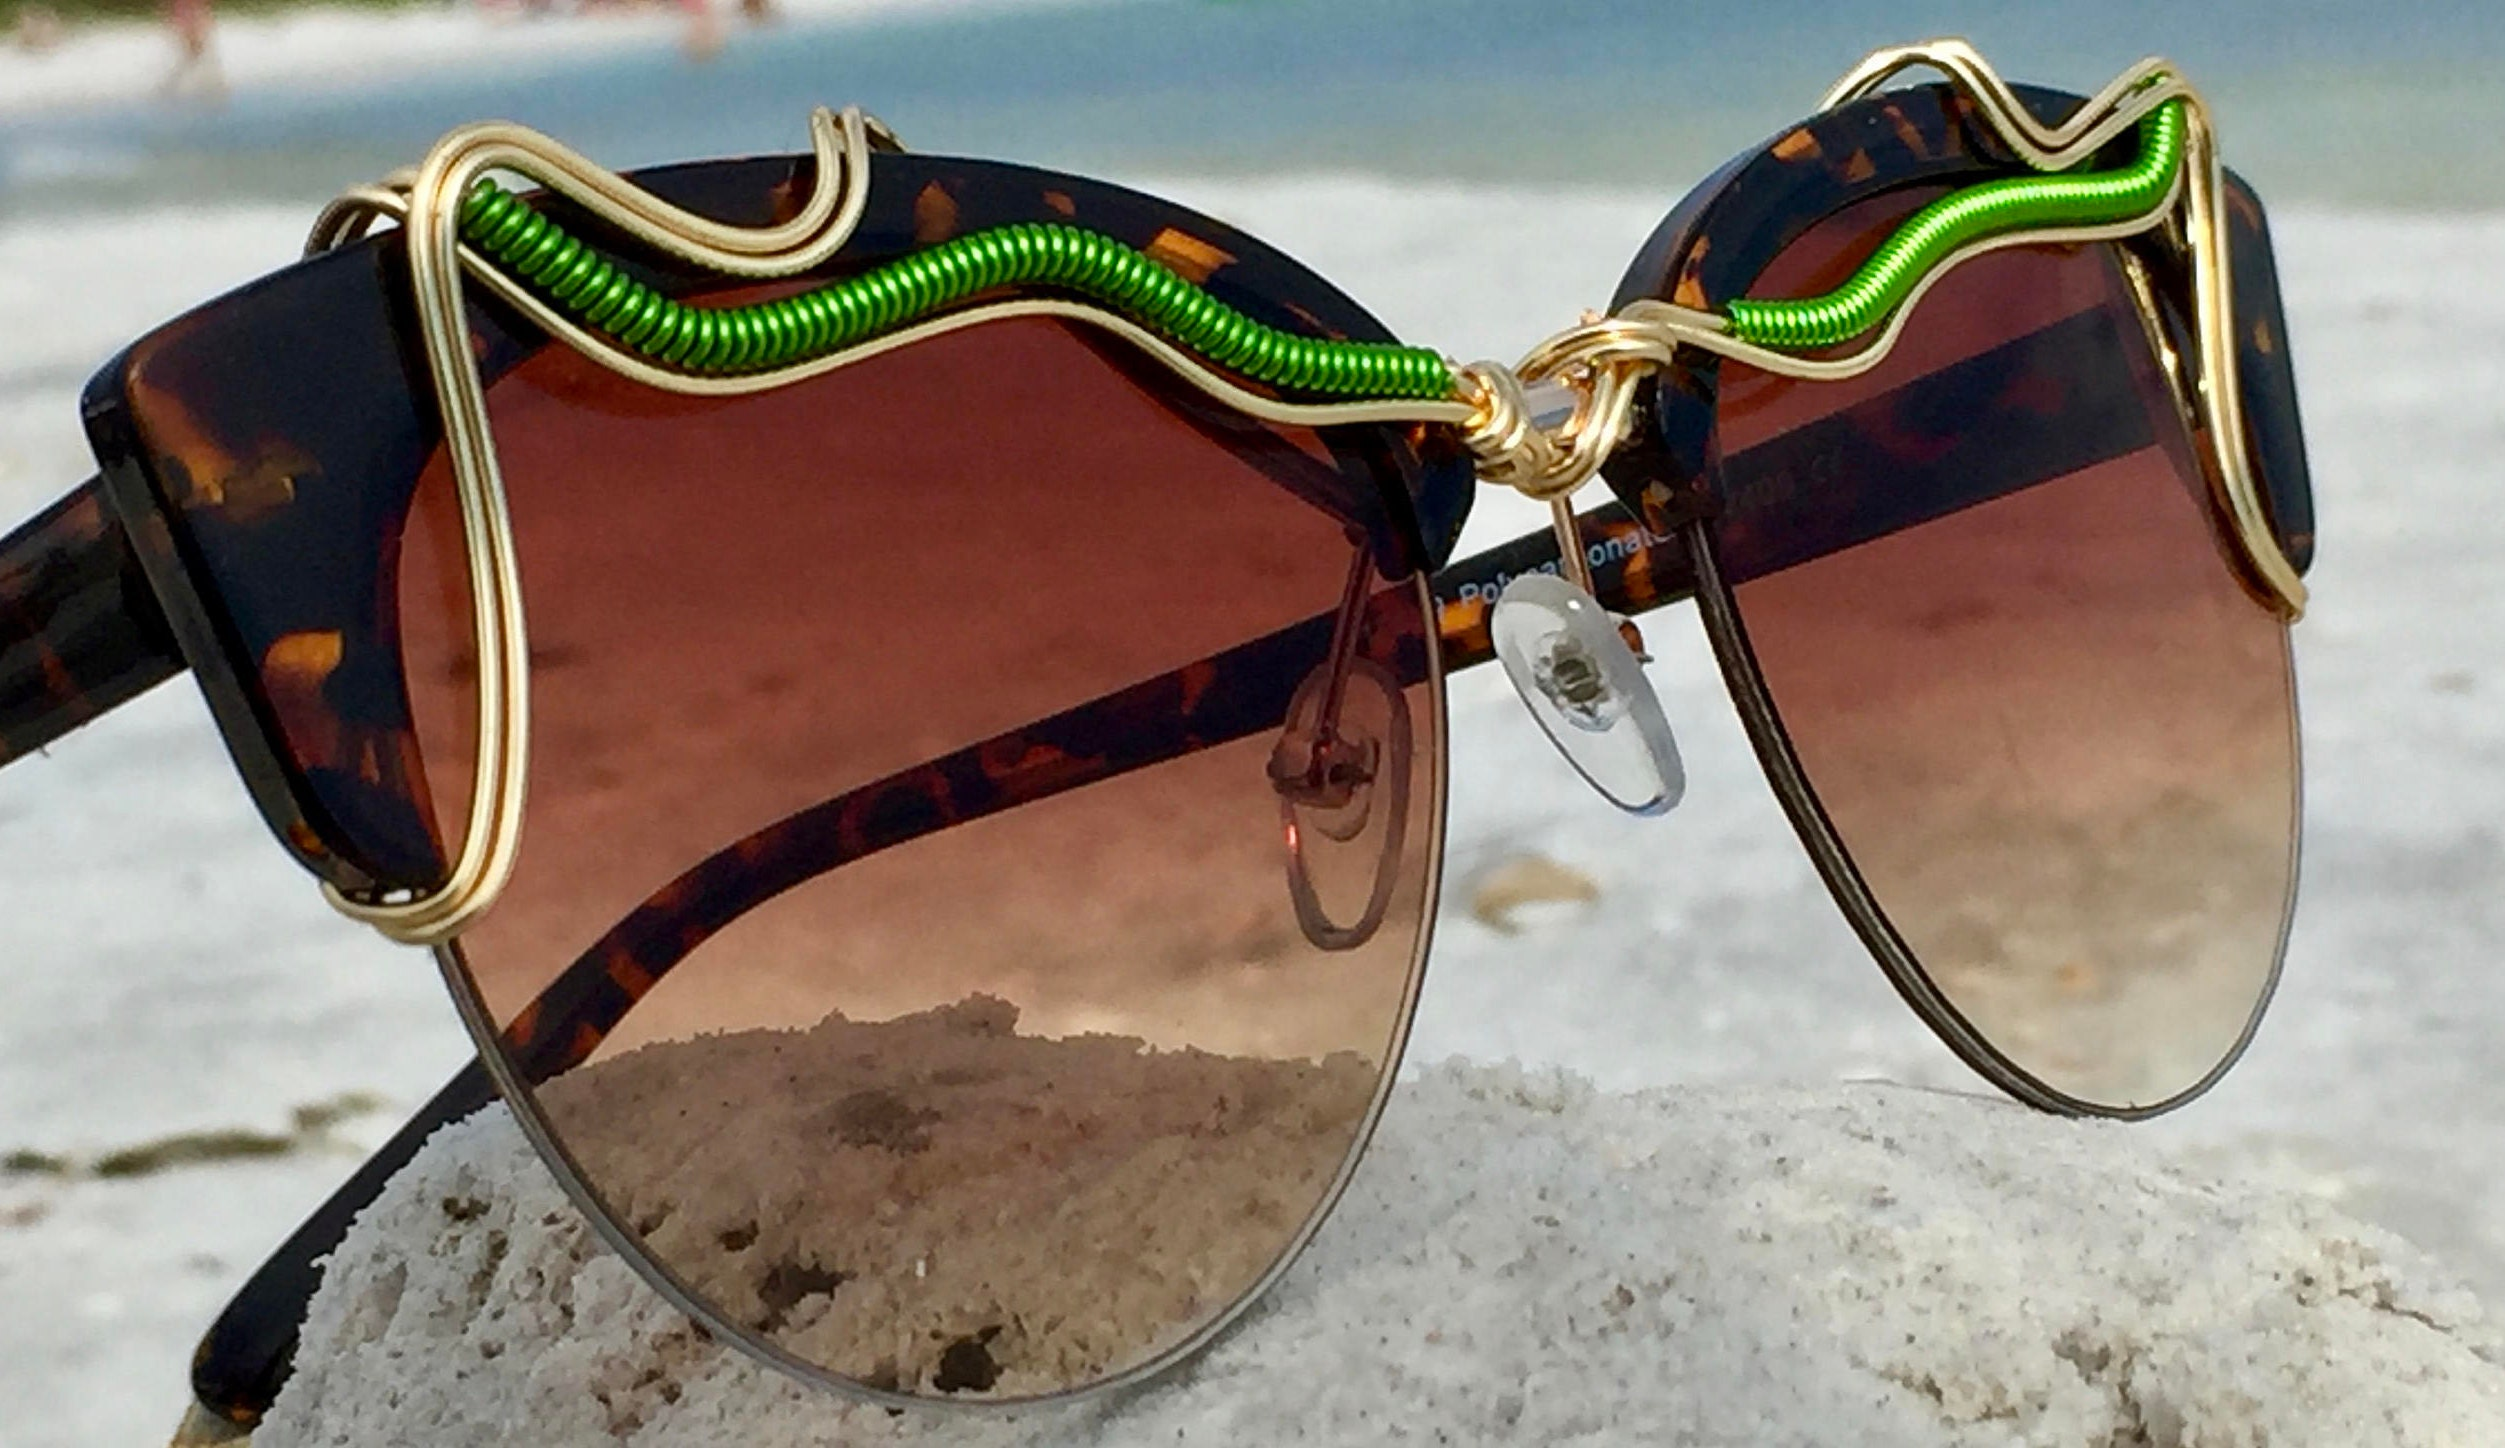 Sunglasses Small Green Summer New Retro Style Cat Eye Spunglasses Gold Wire Wrap W Tortoise Shell Accents